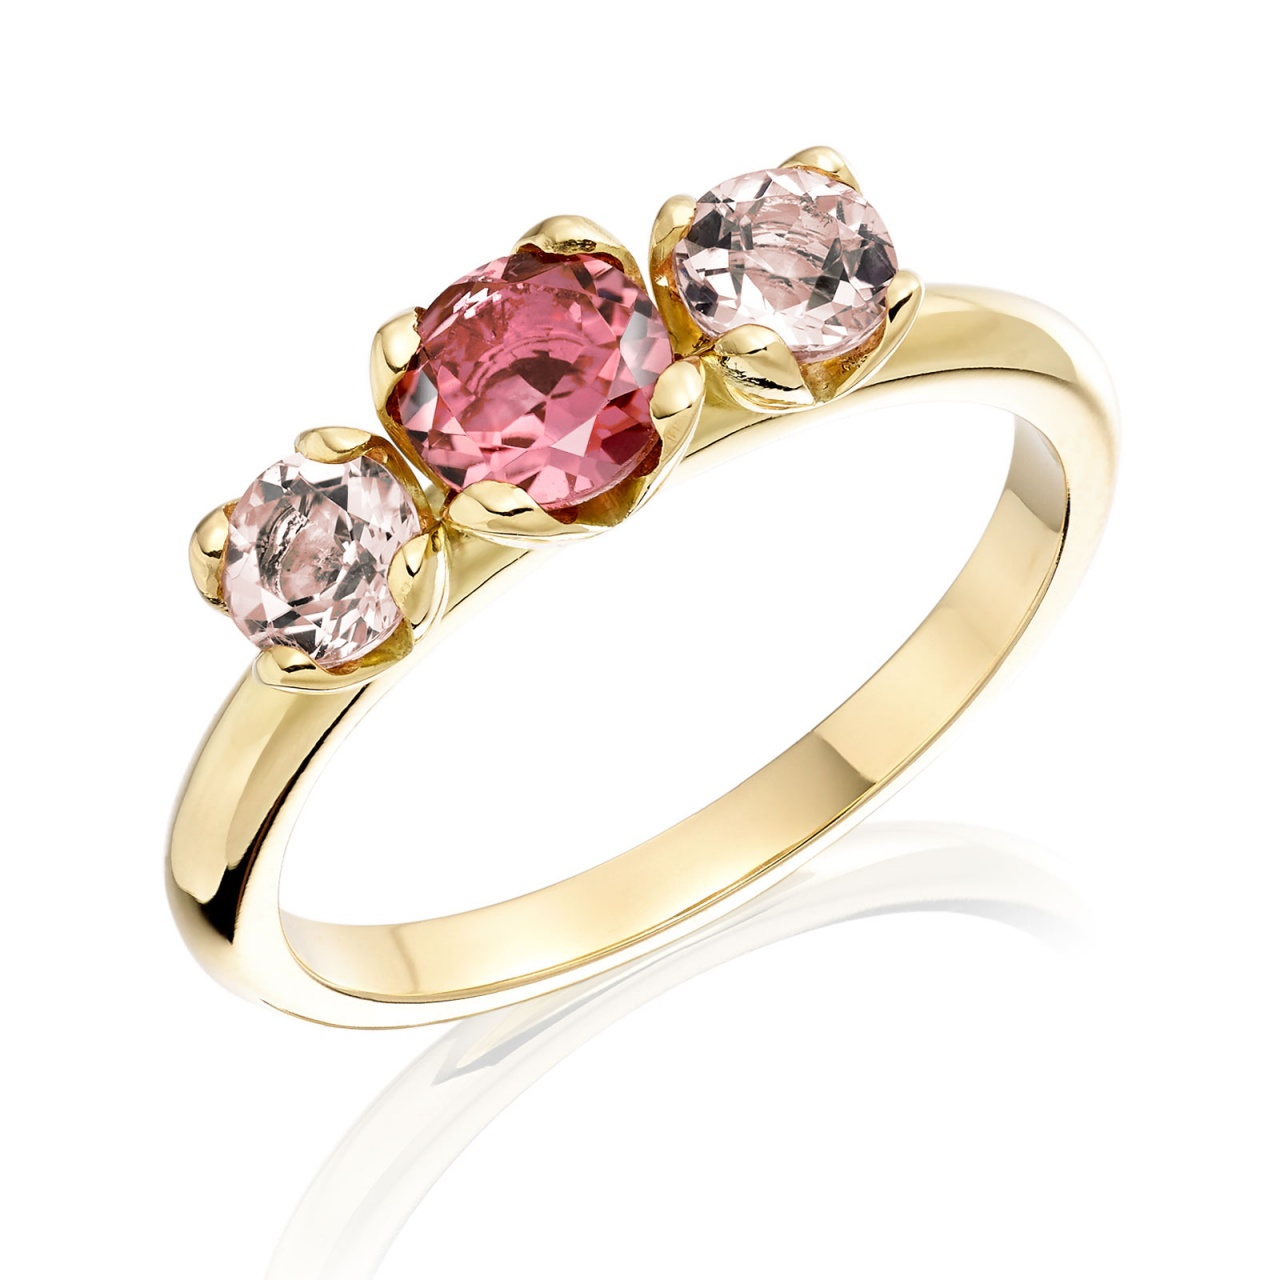 Lief Ring with Pink Tourmaline and Morganite